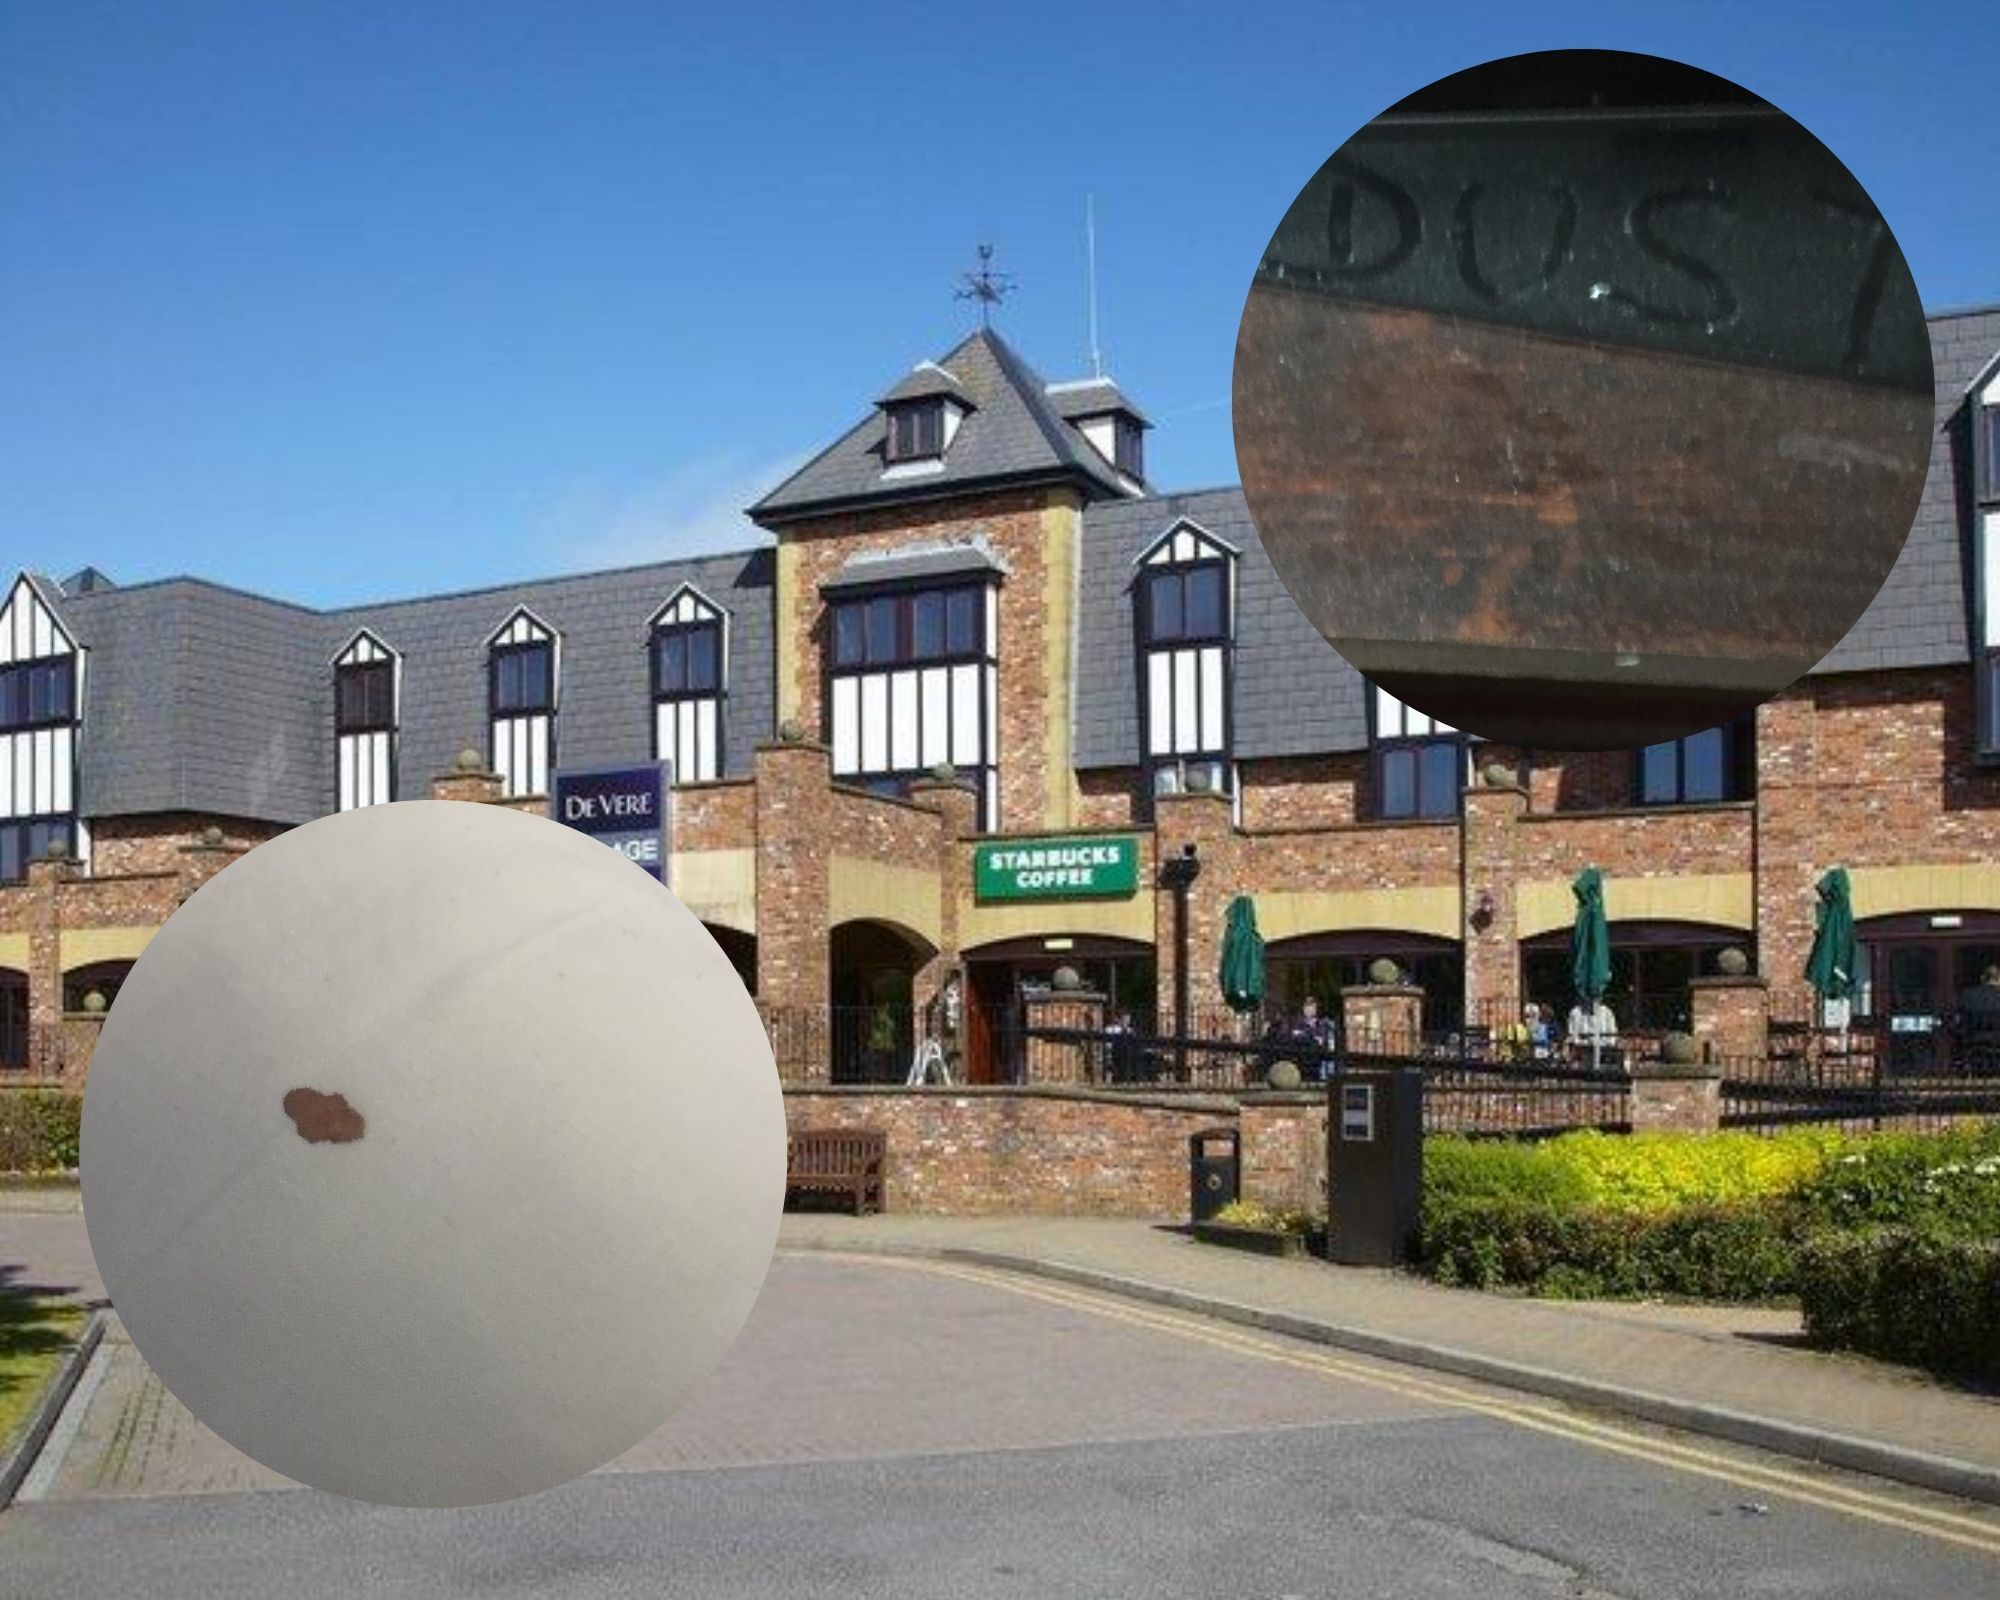 Village Hotel Blackpool Bury Family Outraged By Conditions Lancashire Telegraph